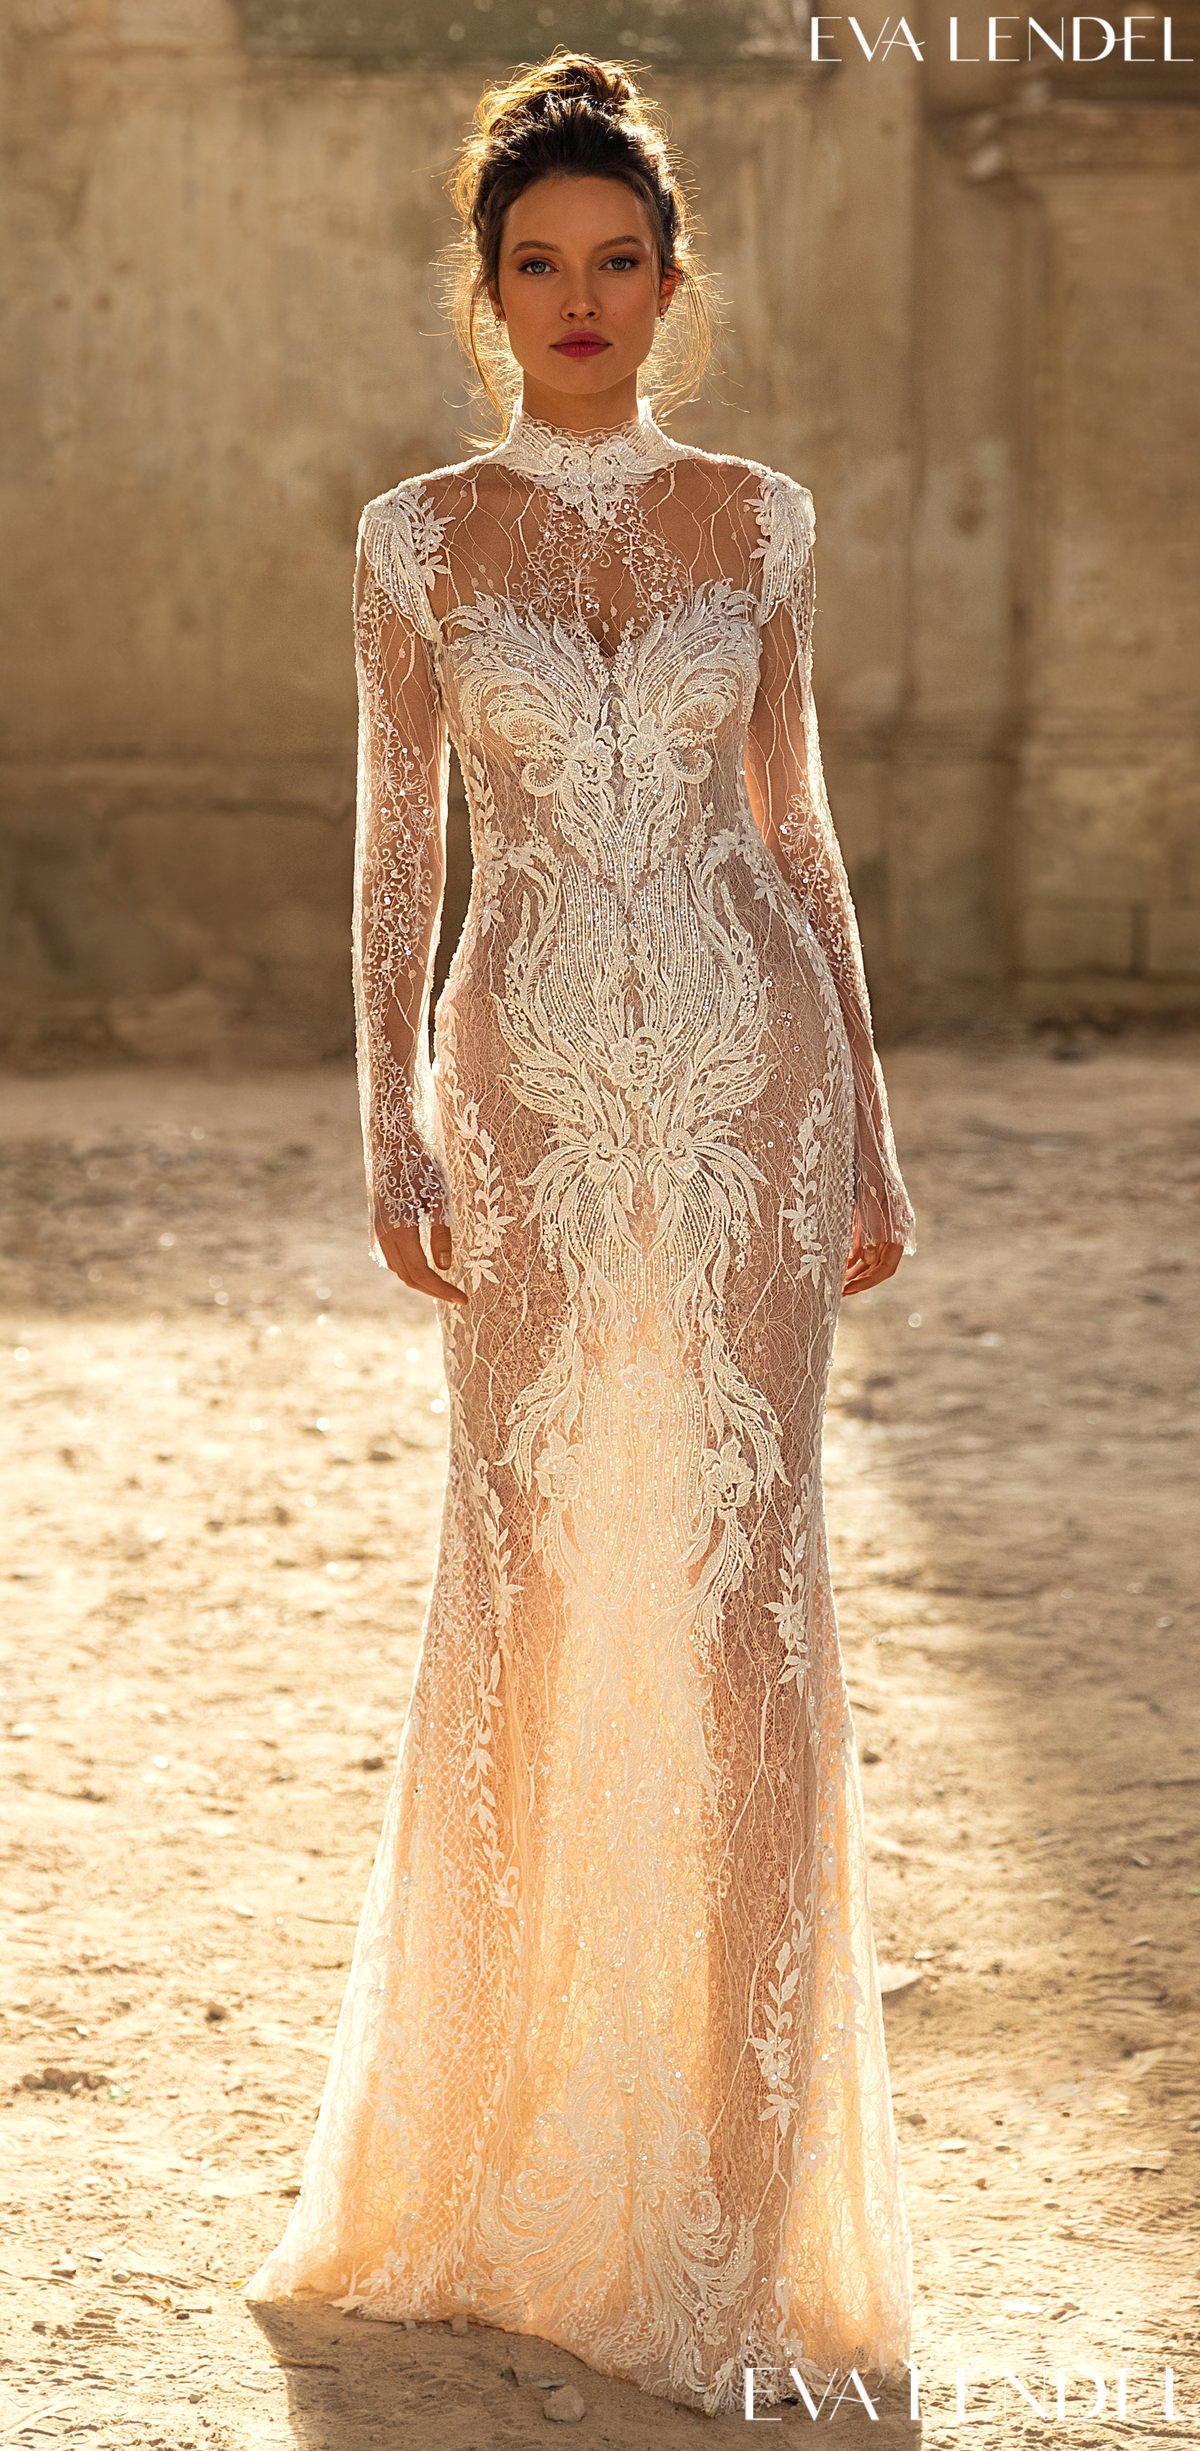 Eva Lendel Wedding Dresses 2021- Golden Hour Collection -Bredley